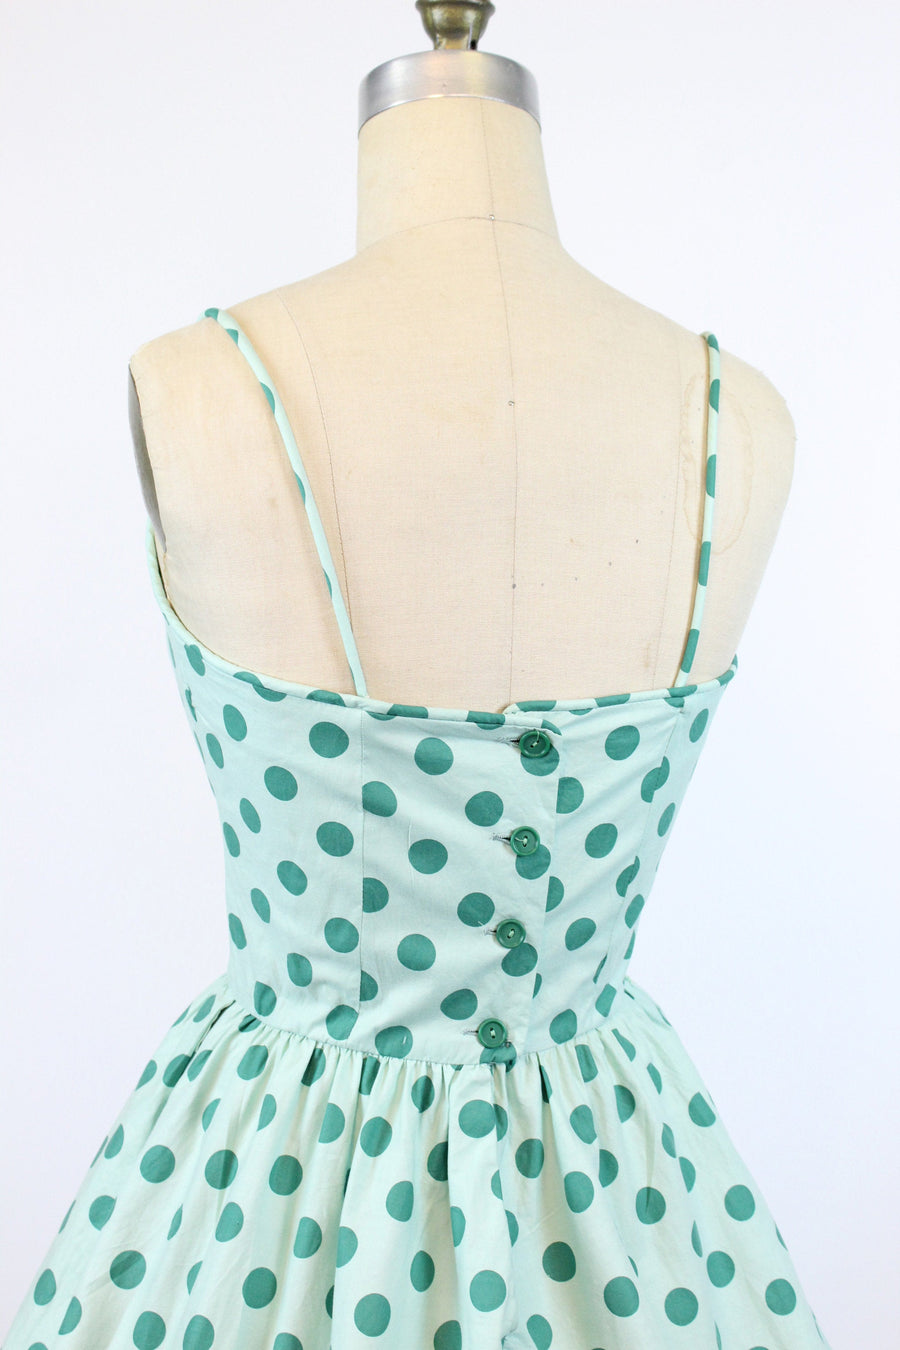 1950s green polka dot cotton dress small | vintage sun dress | new in